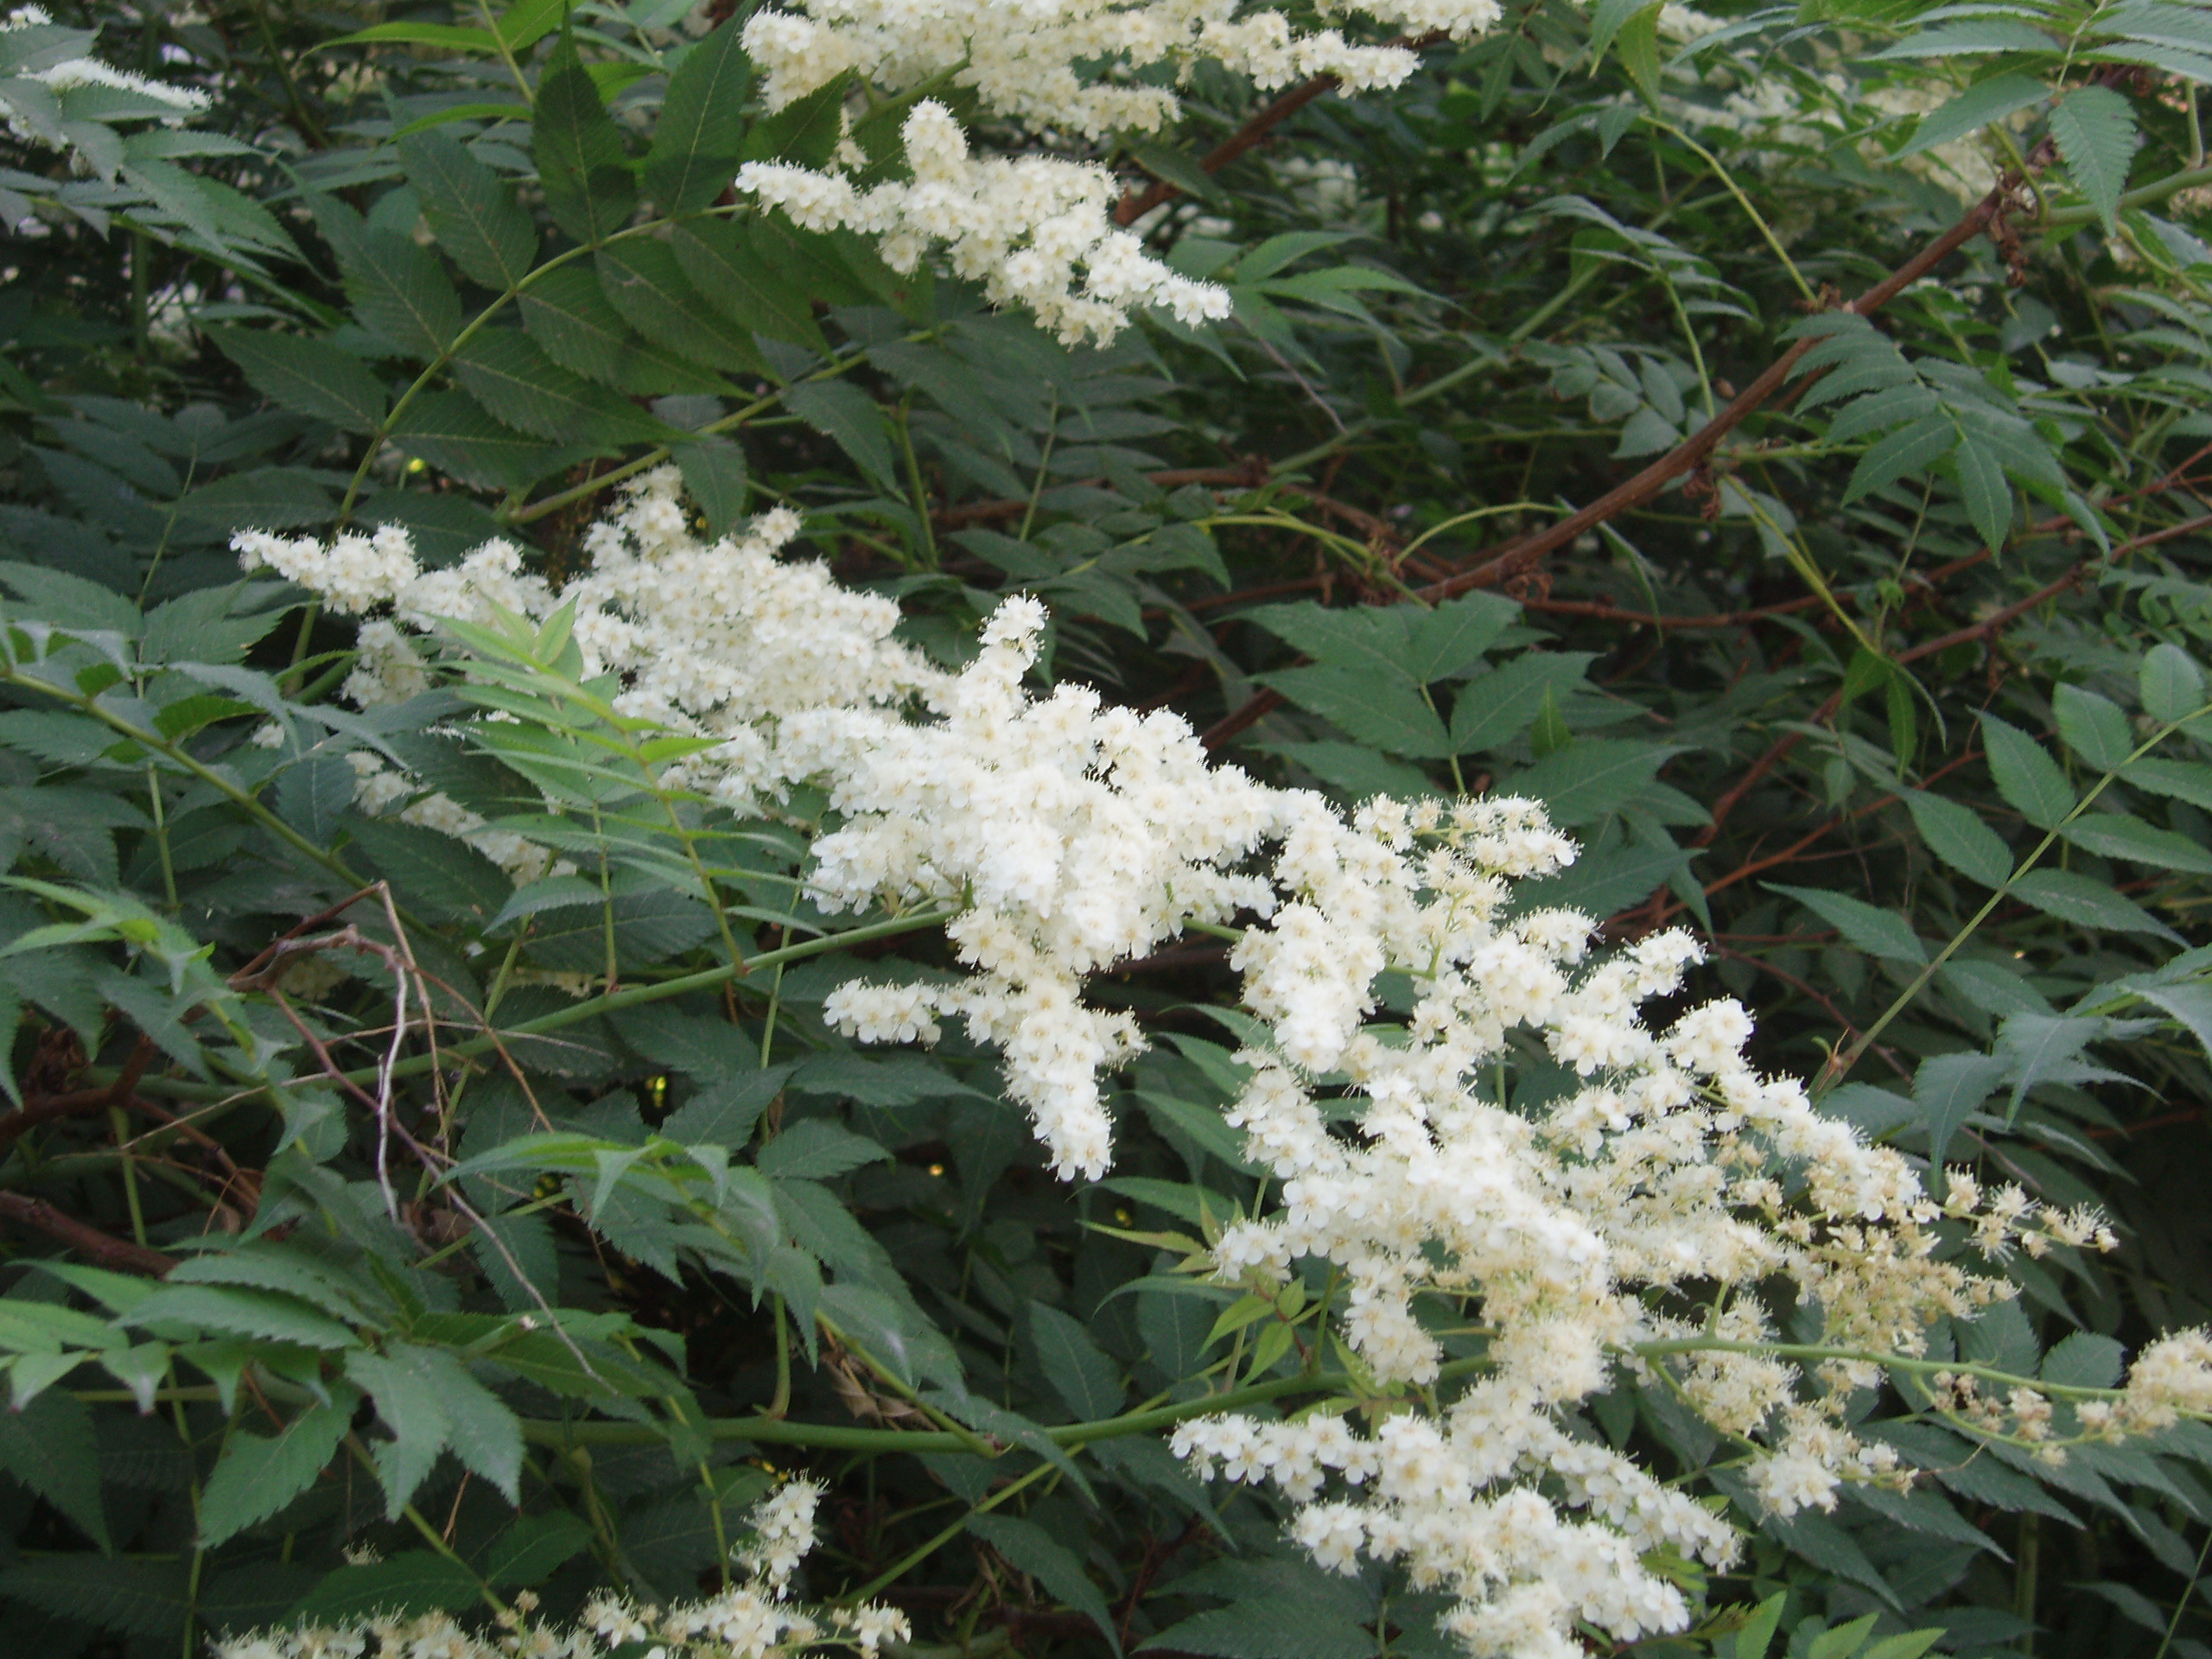 Image of false spiraea